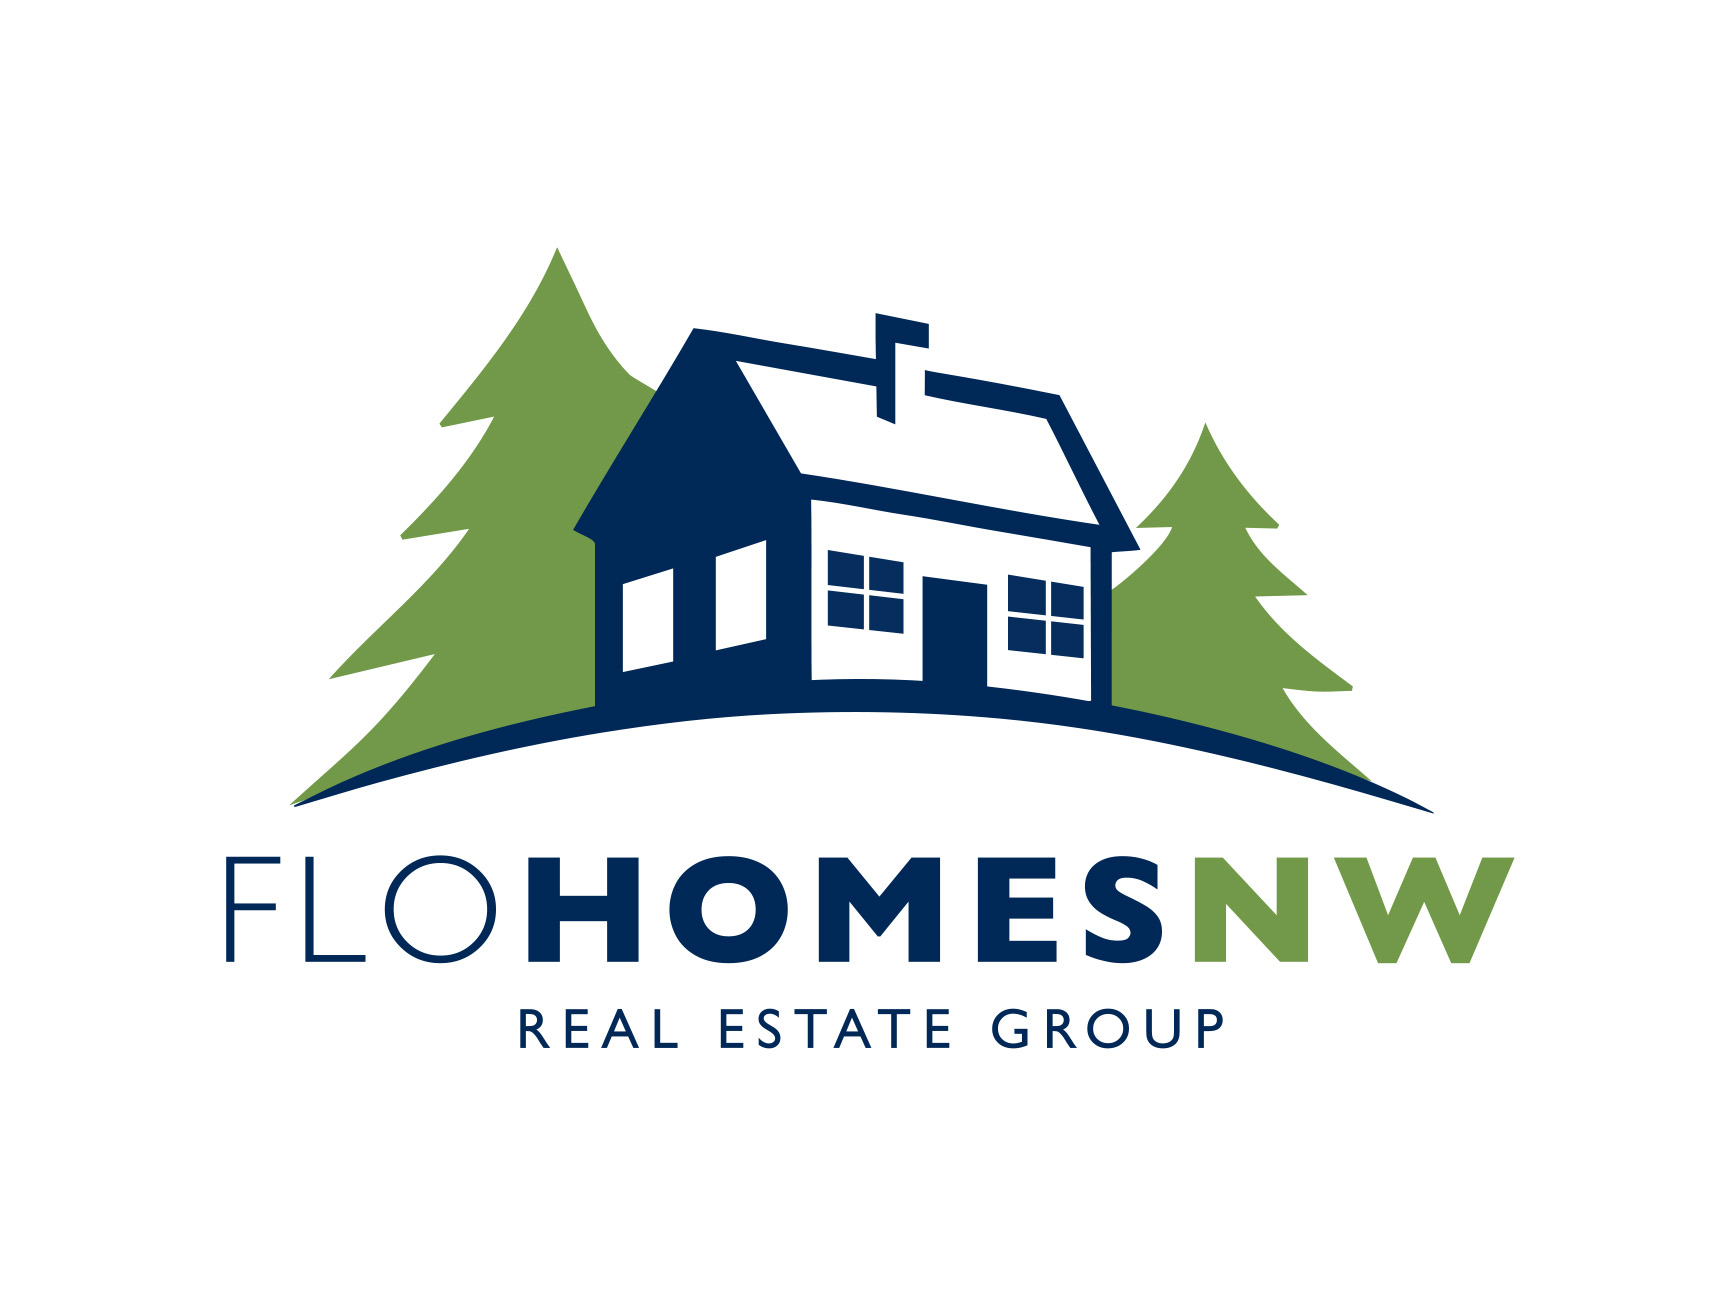 FLO-HOMES-LOGO